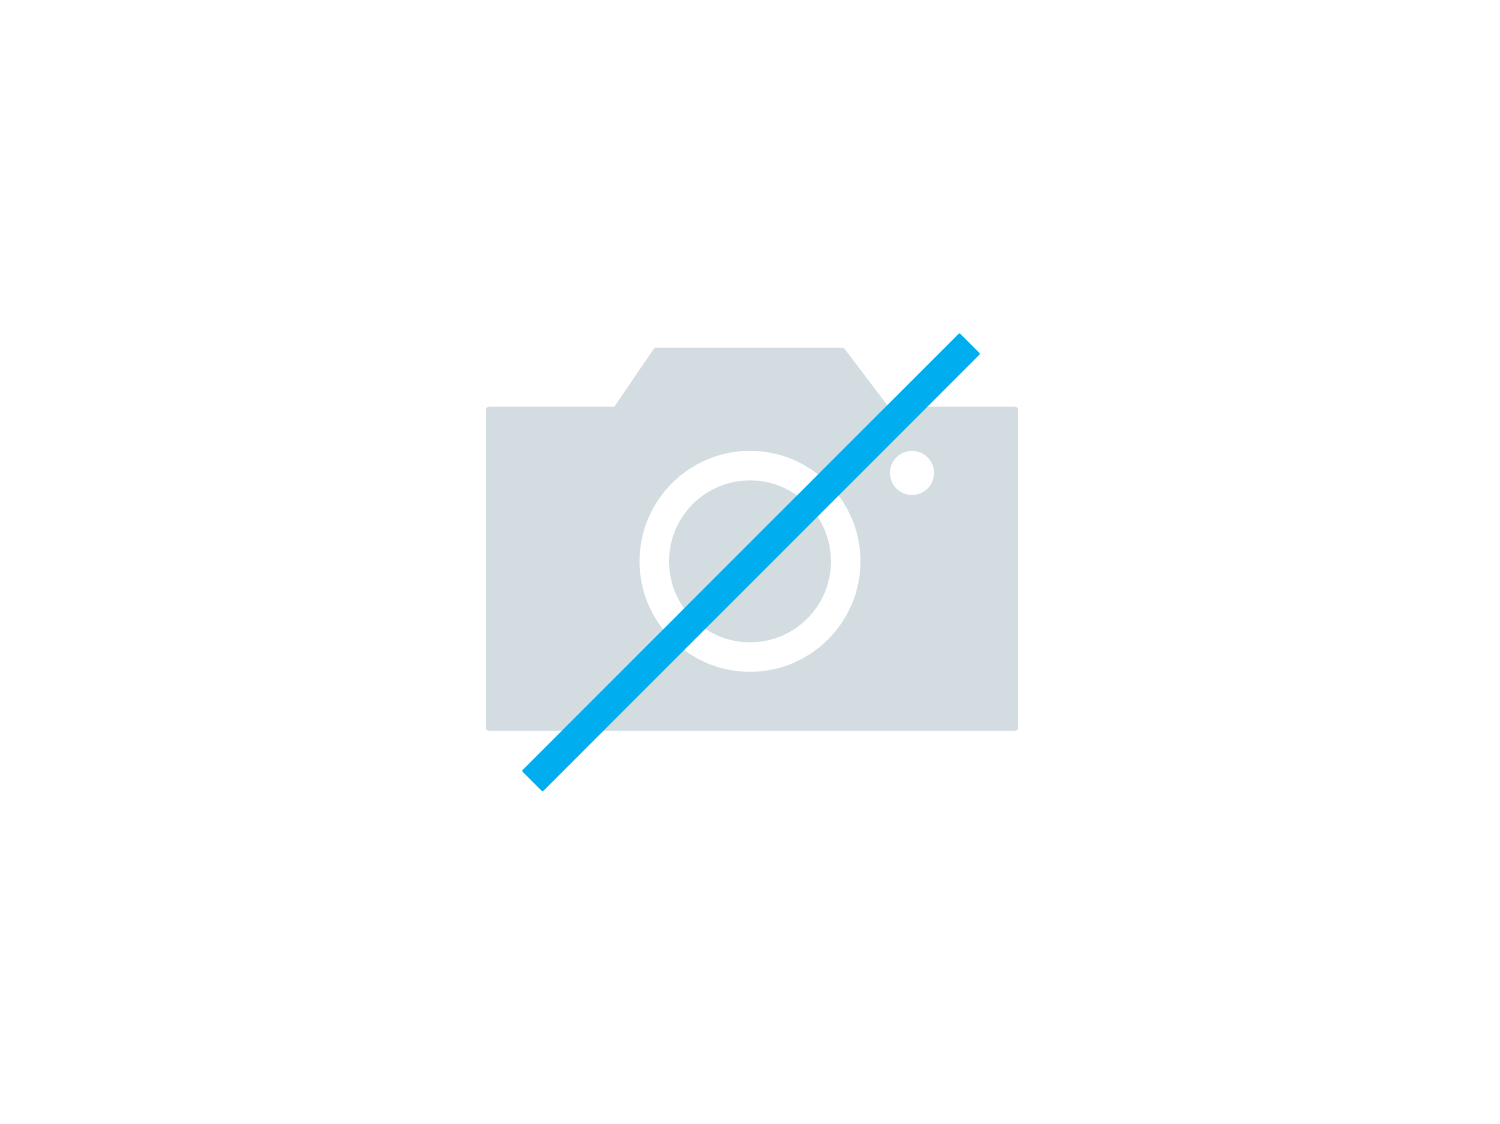 Fauteuil Belize lederlook wit